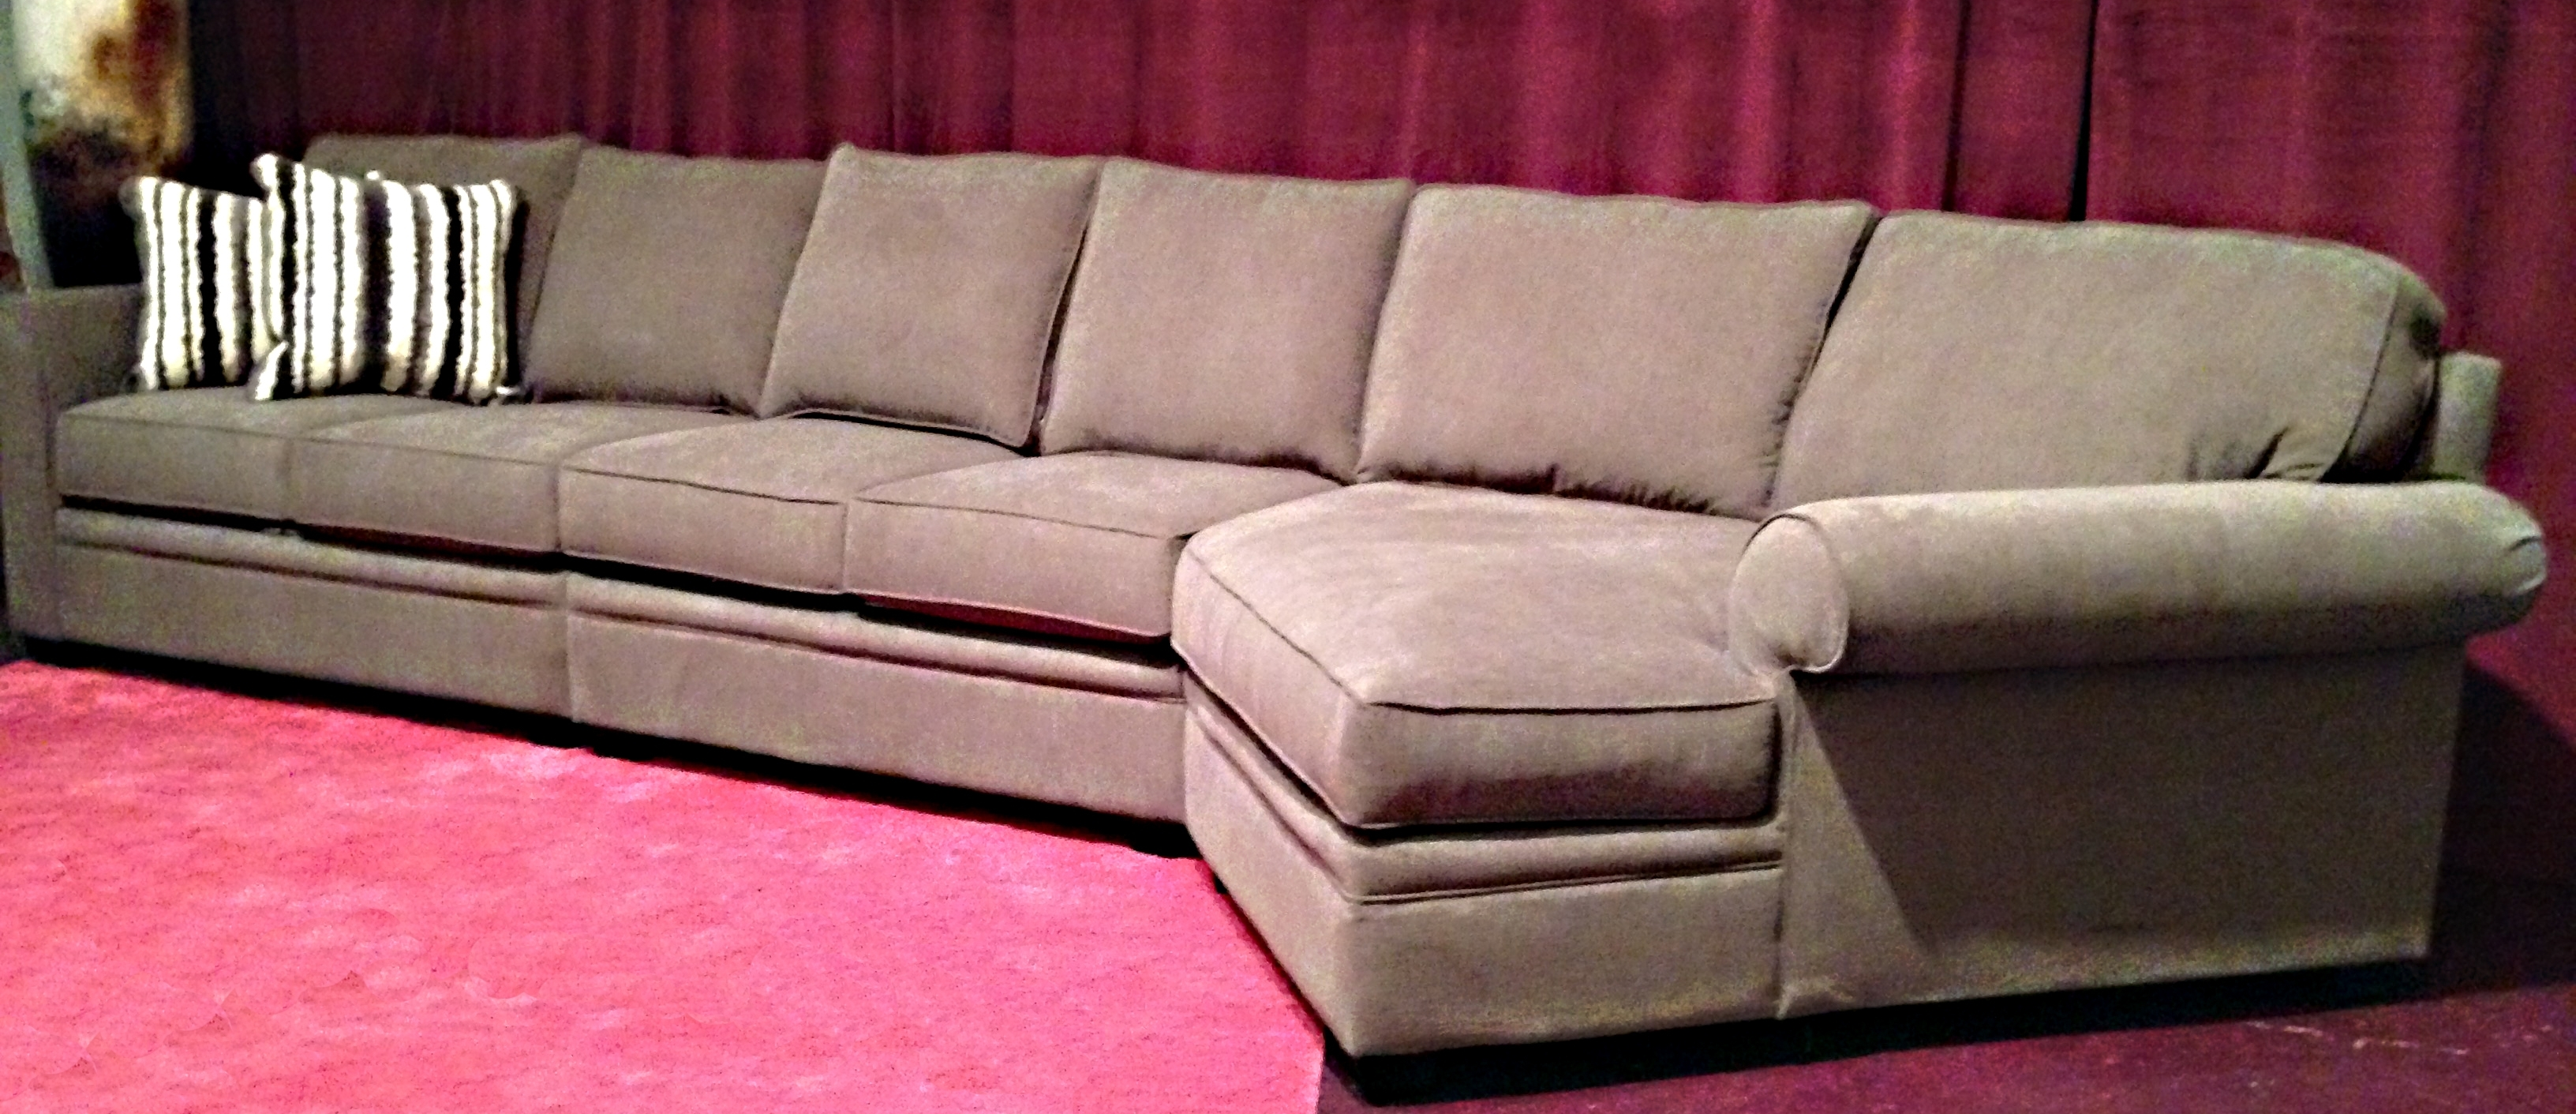 Oversized Couch For Sectional Sofas At Amazon (View 13 of 20)